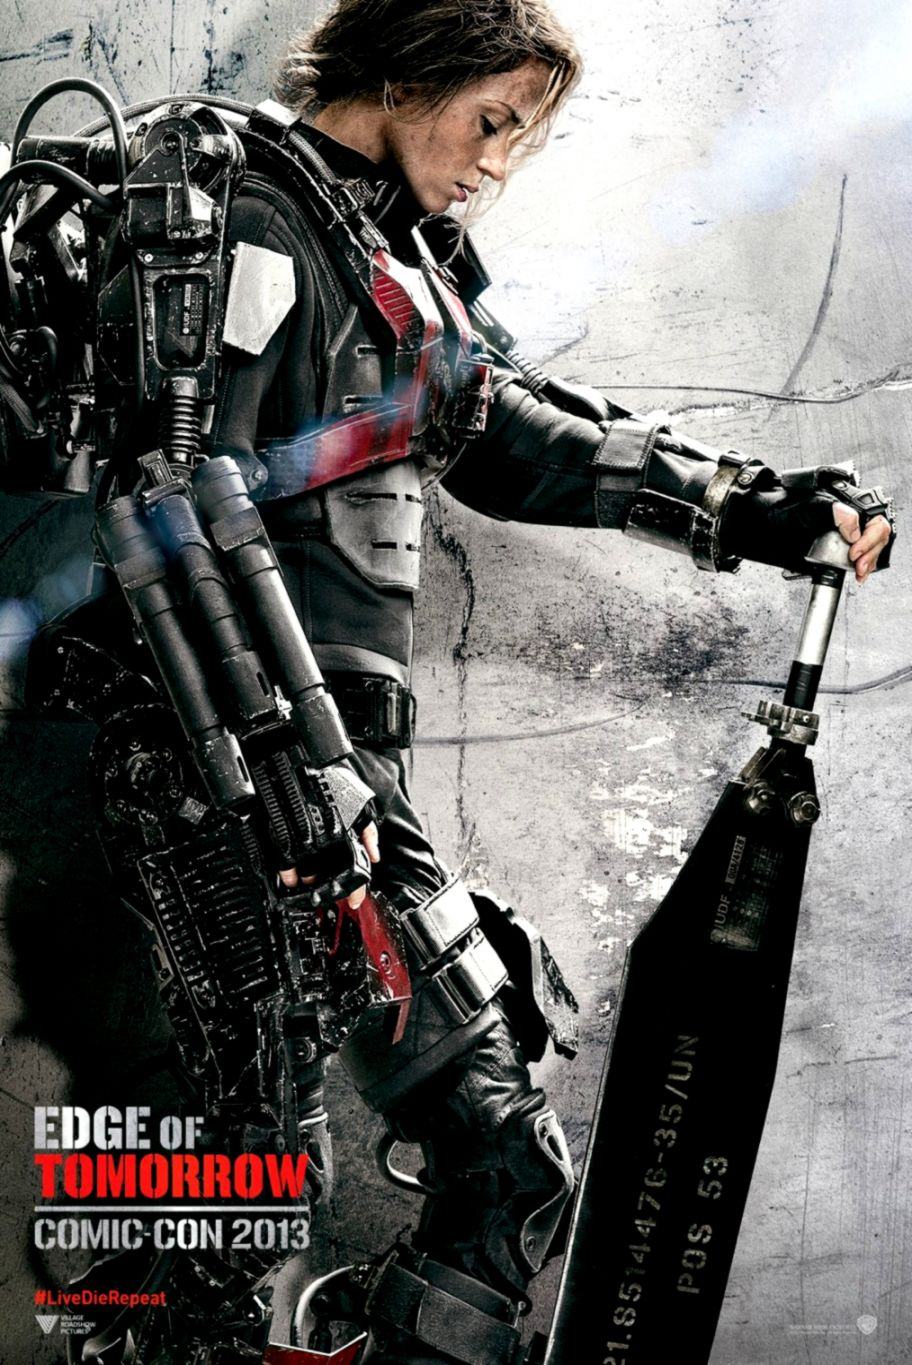 Emily Blunt And Tom Cruise In Edge Of Tomorrow Poster Wallpapers